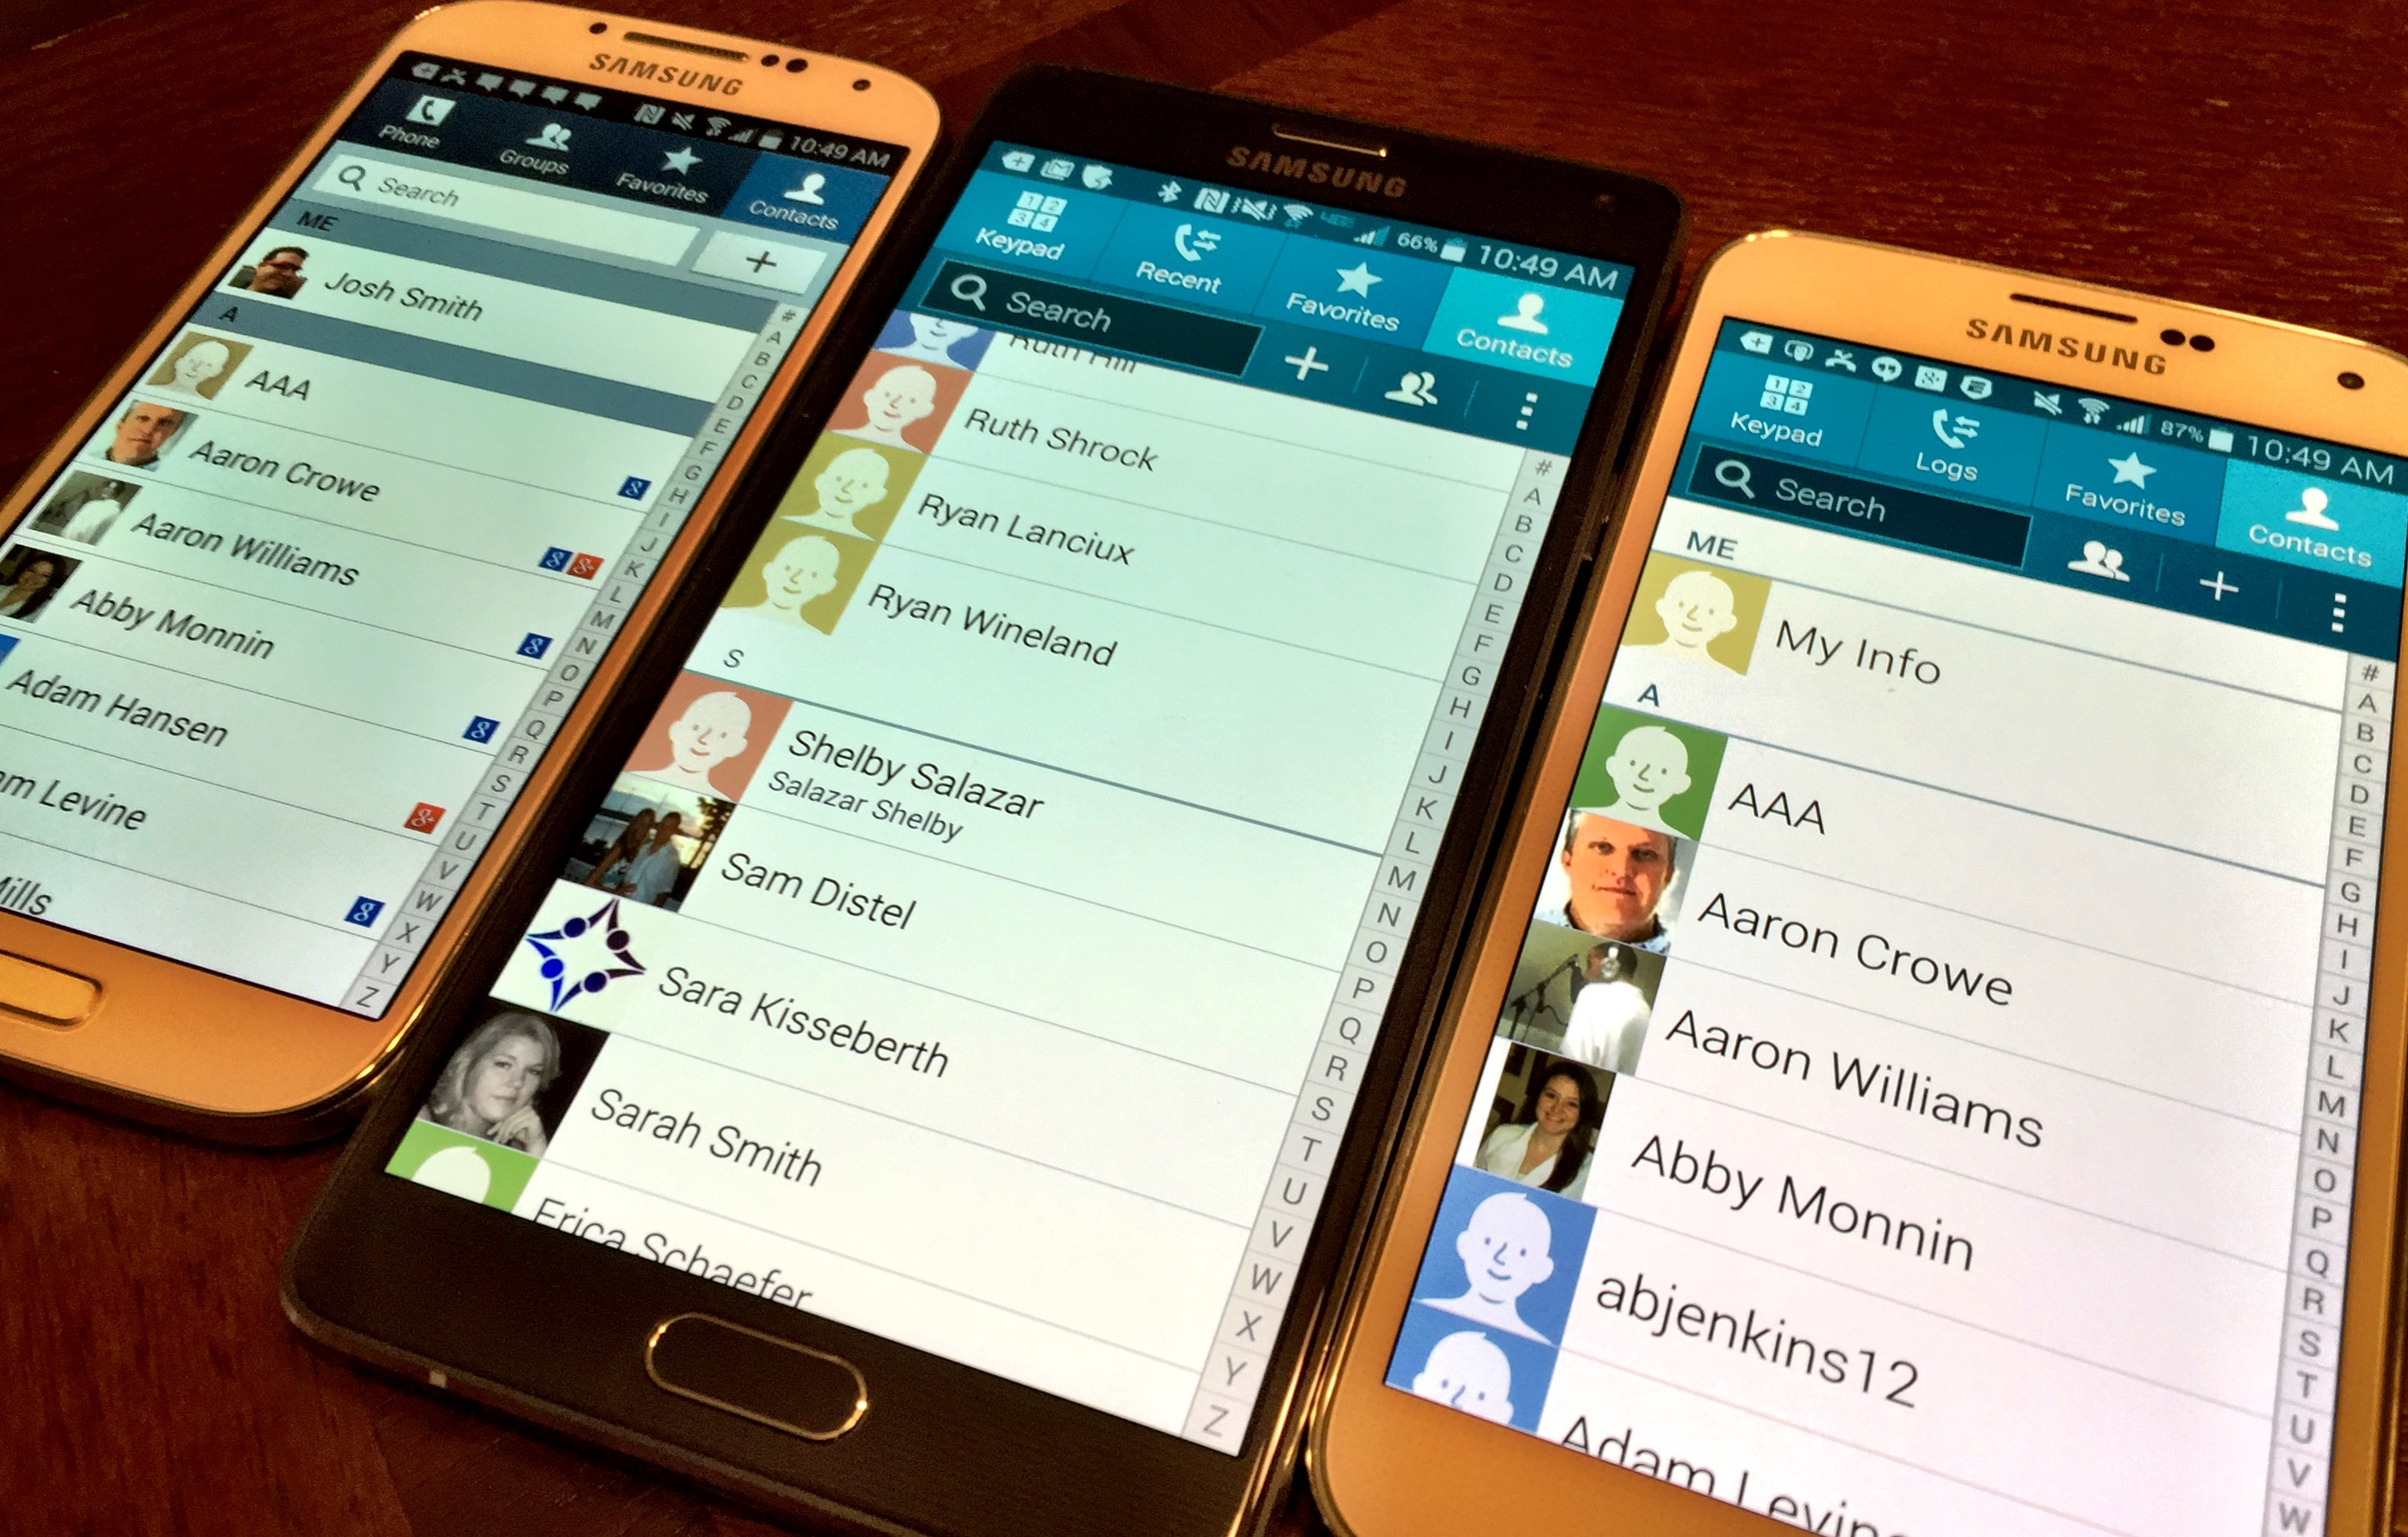 How to Remove Duplicate Contacts on Galaxy S5, Galaxy S4